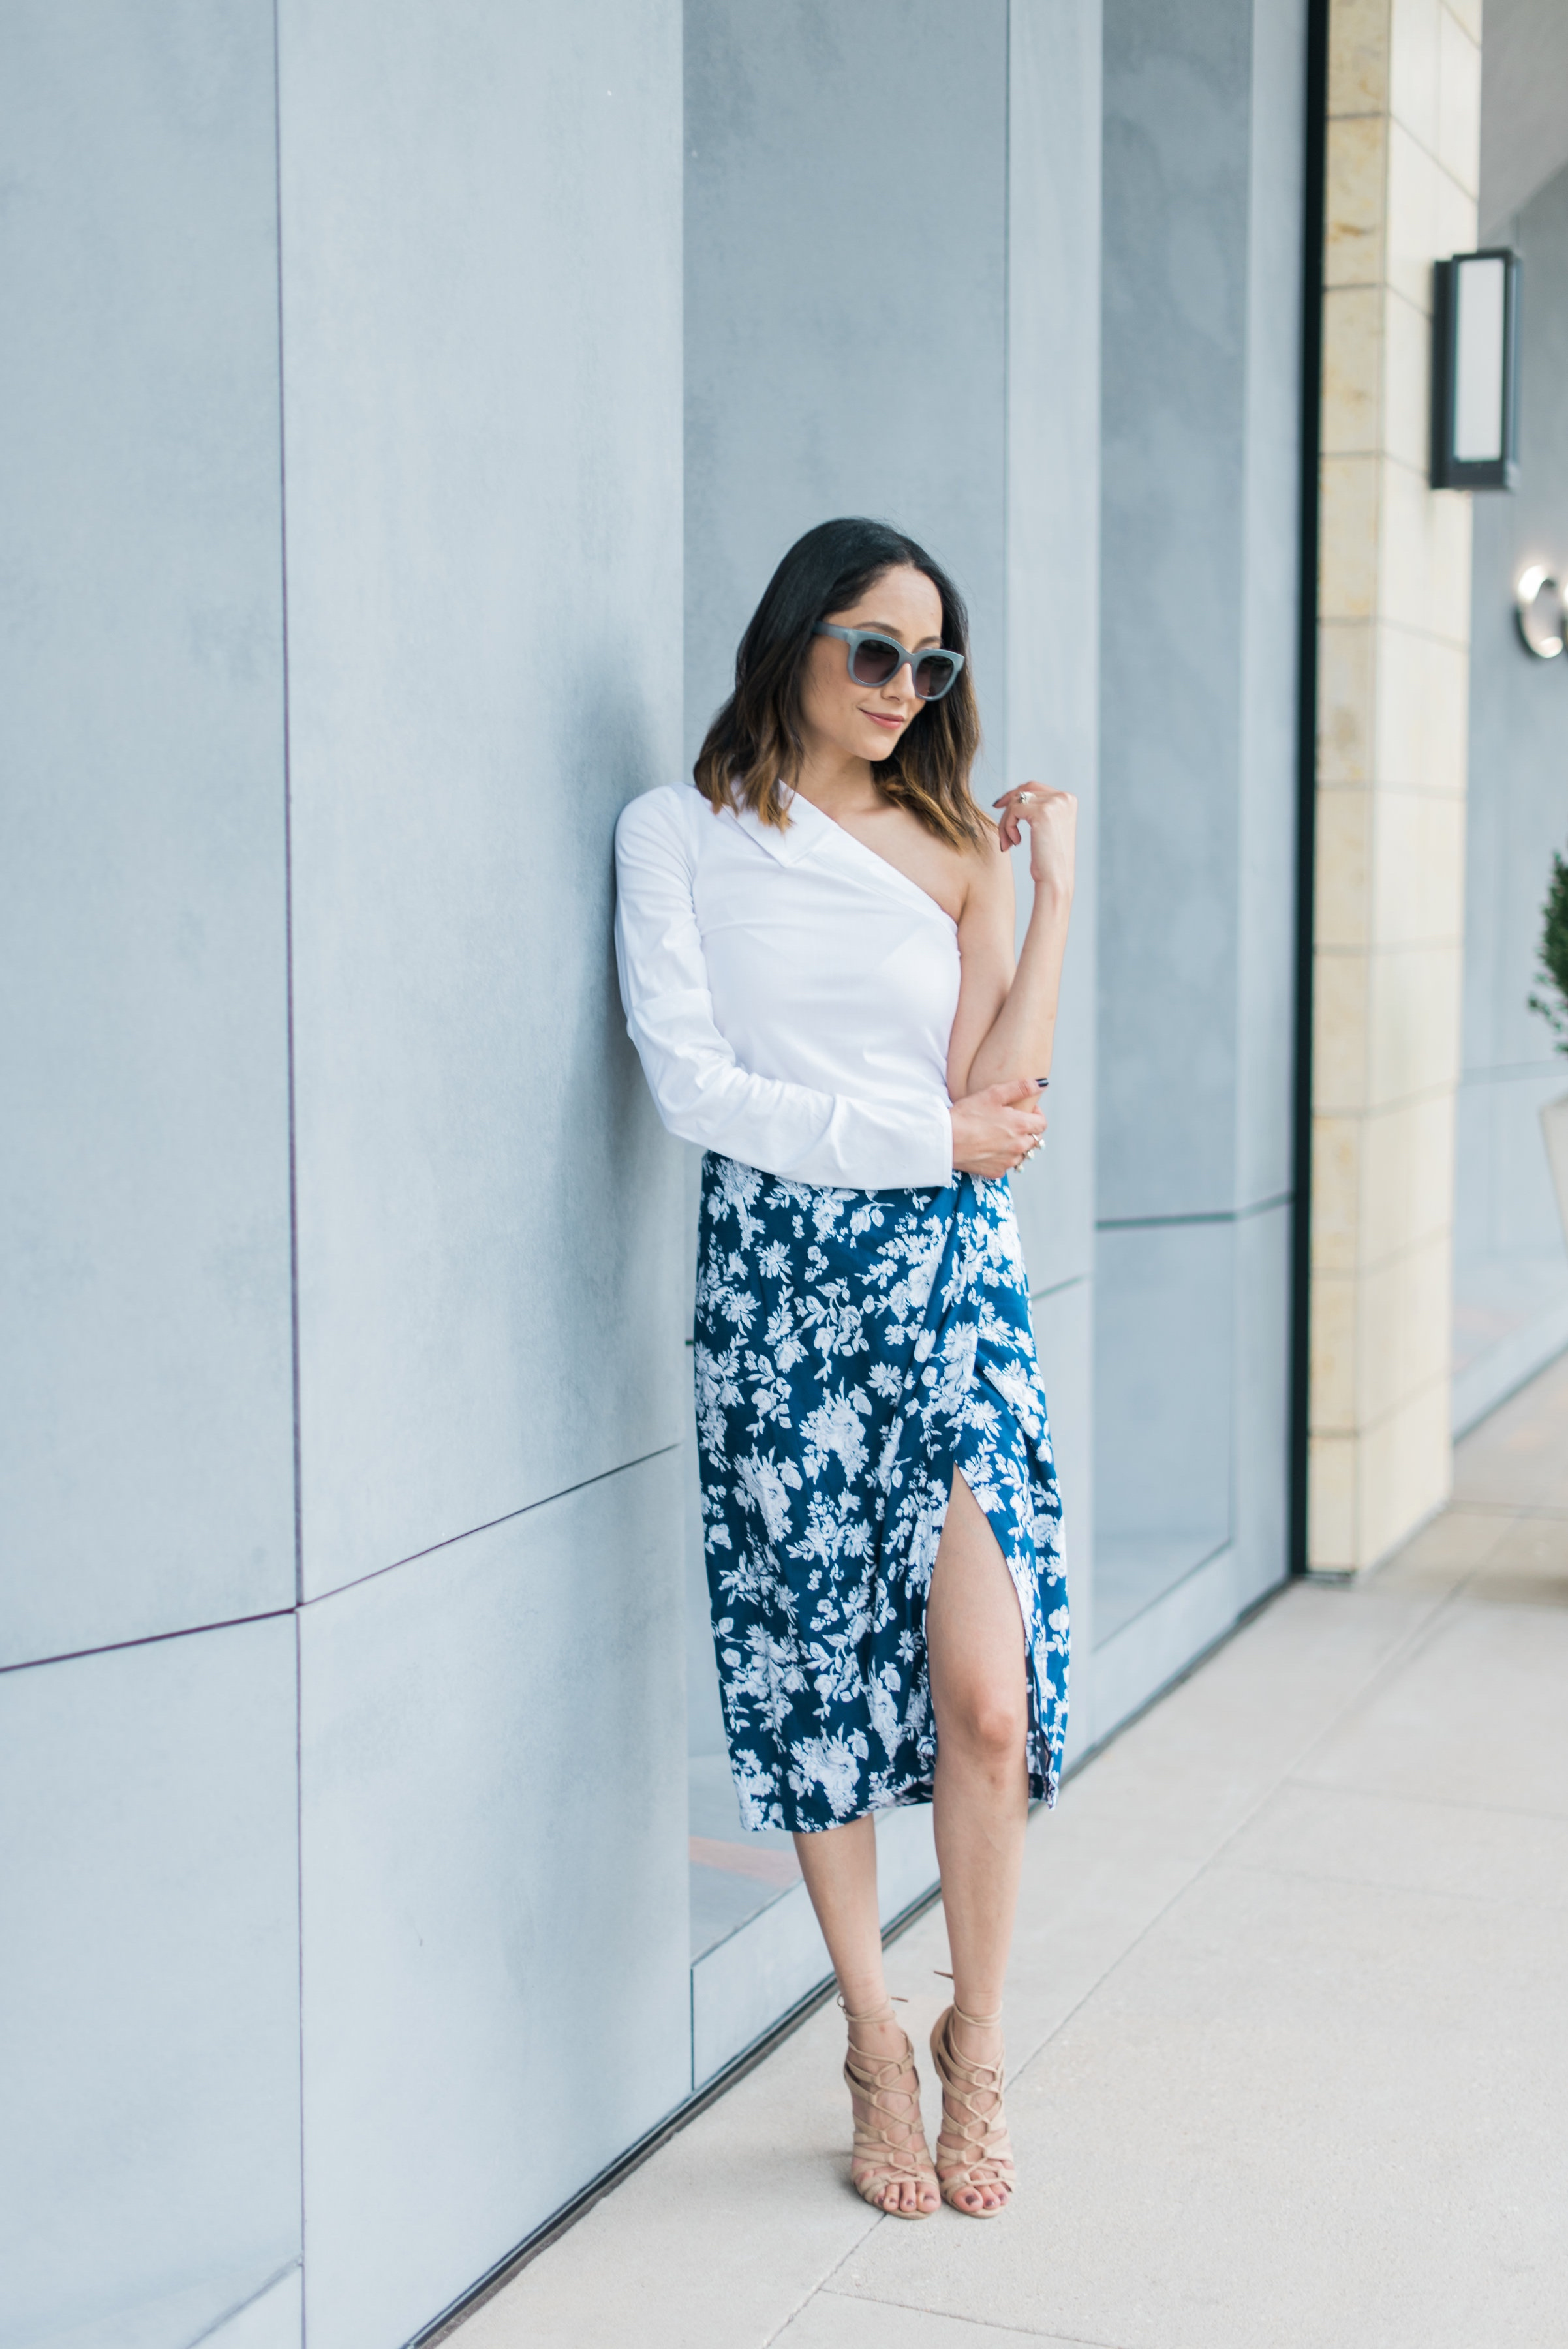 Lifestyle blogger Lilly Beltran of Daily Carving in a summer outfit with a wrap skirt and white one shoulder top